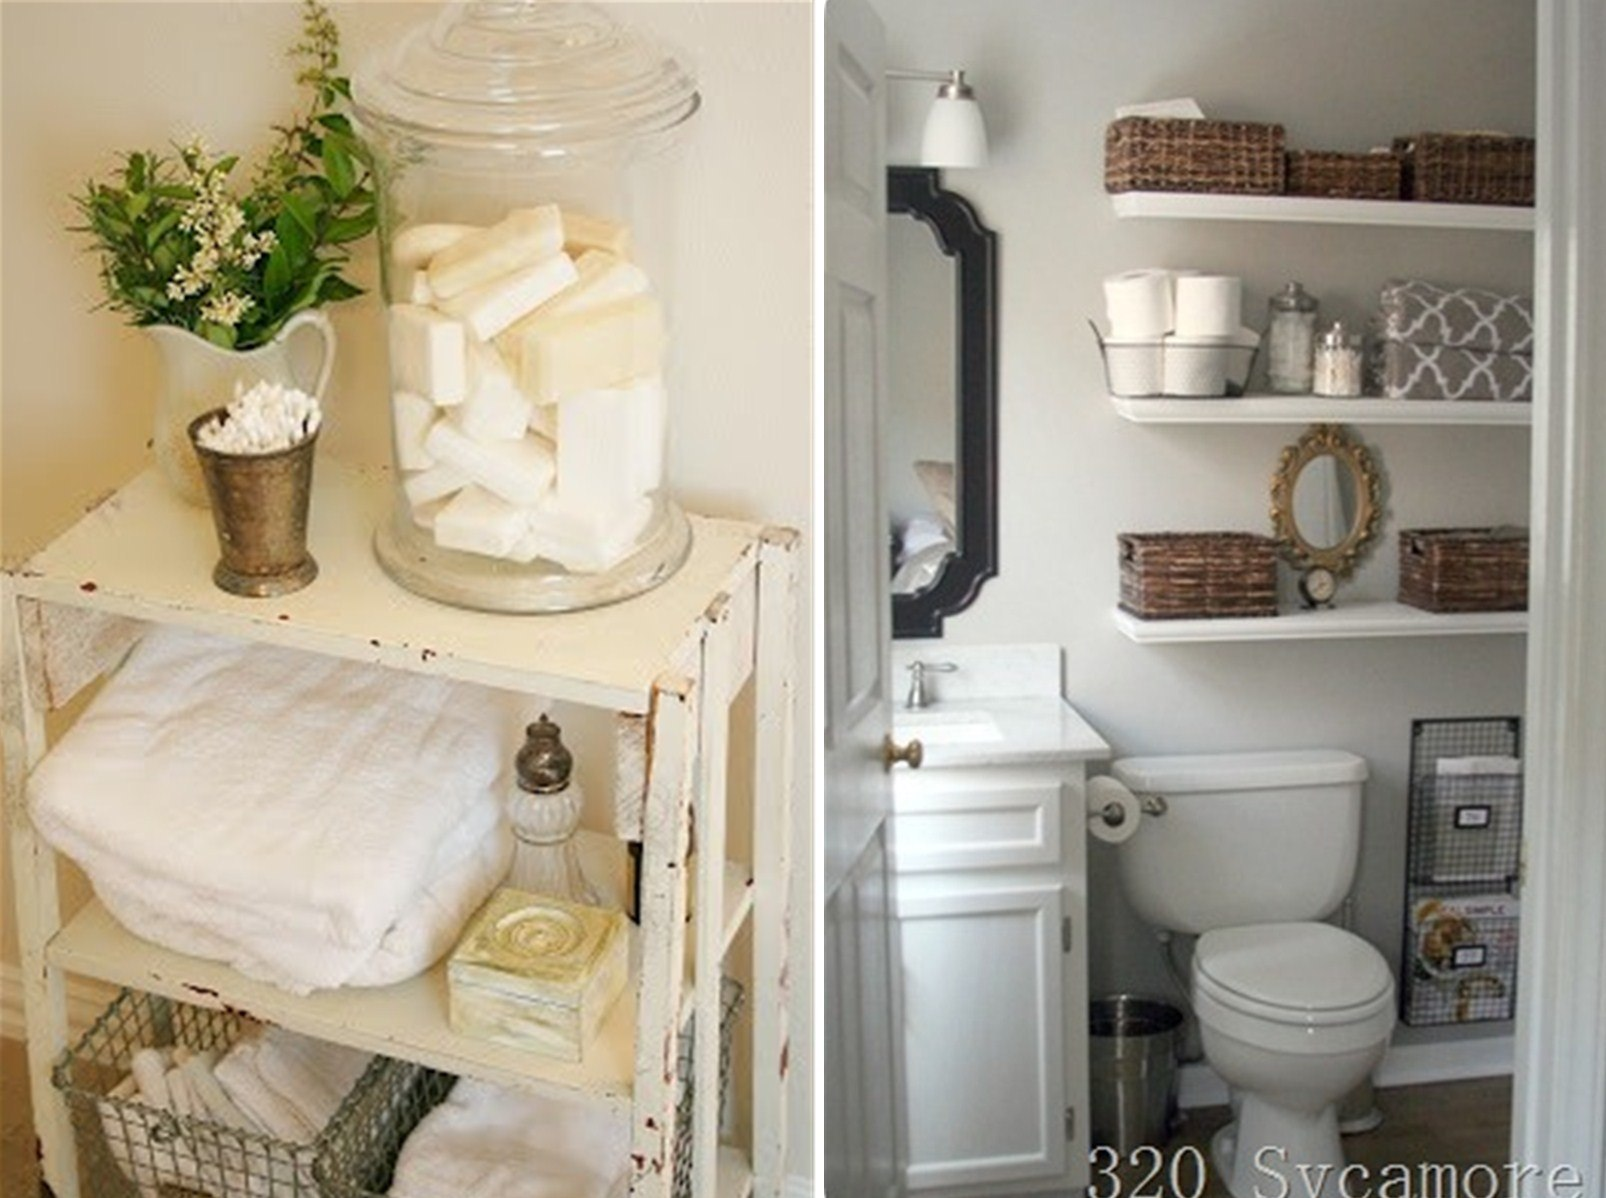 Good Add Glamour With Small Vintage Bathroom Ideas (16)